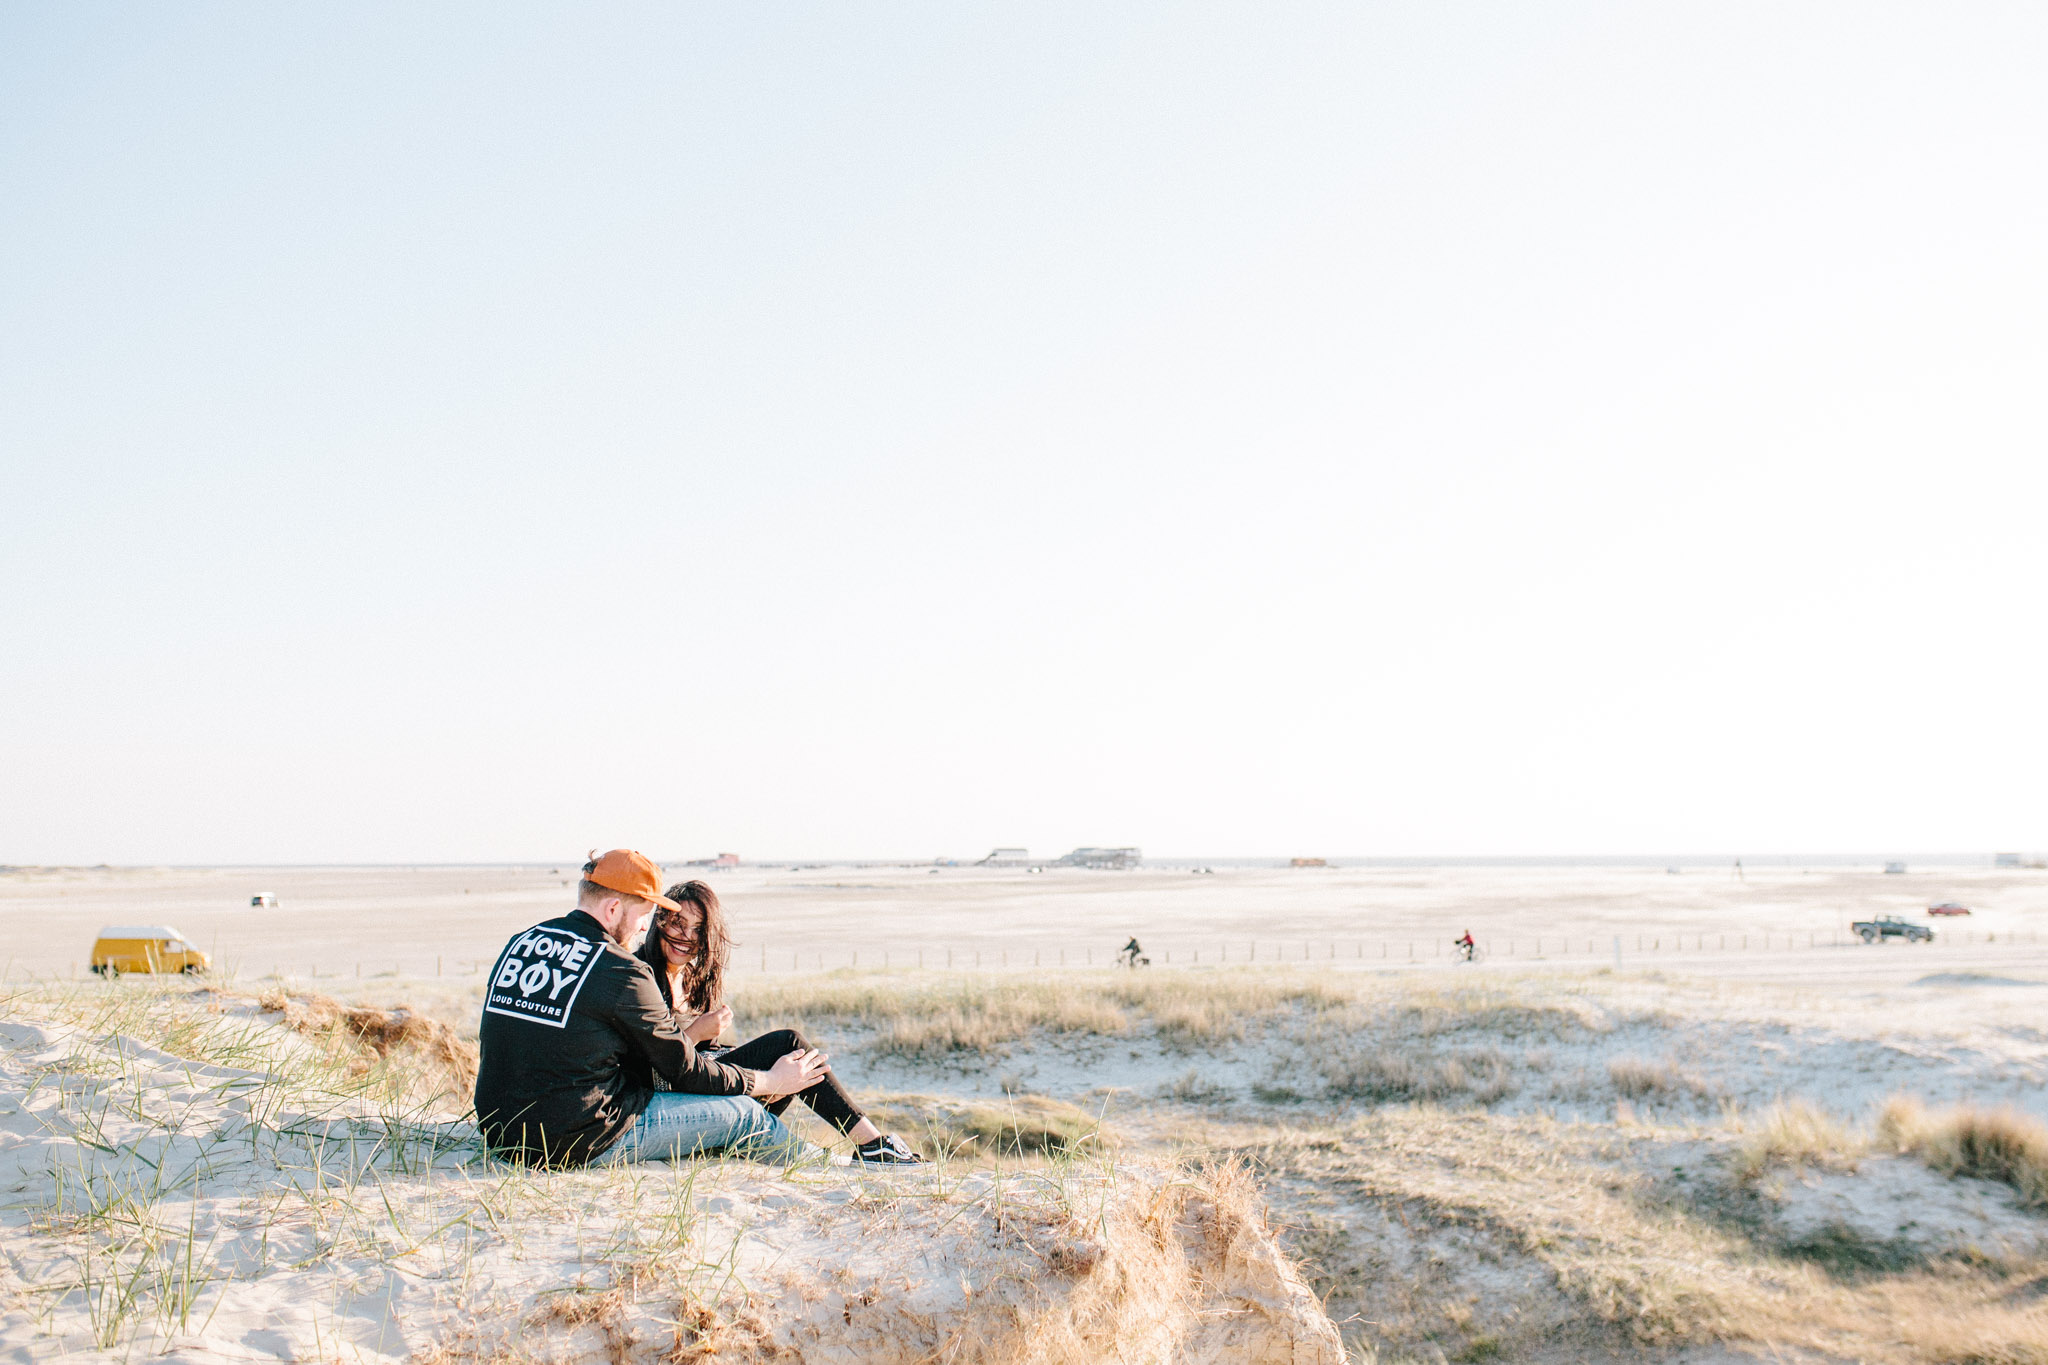 Sankt-Peter-Ording-Engagement-Pia-Anna-Christian-Wedding-Photography-KT-6.jpg